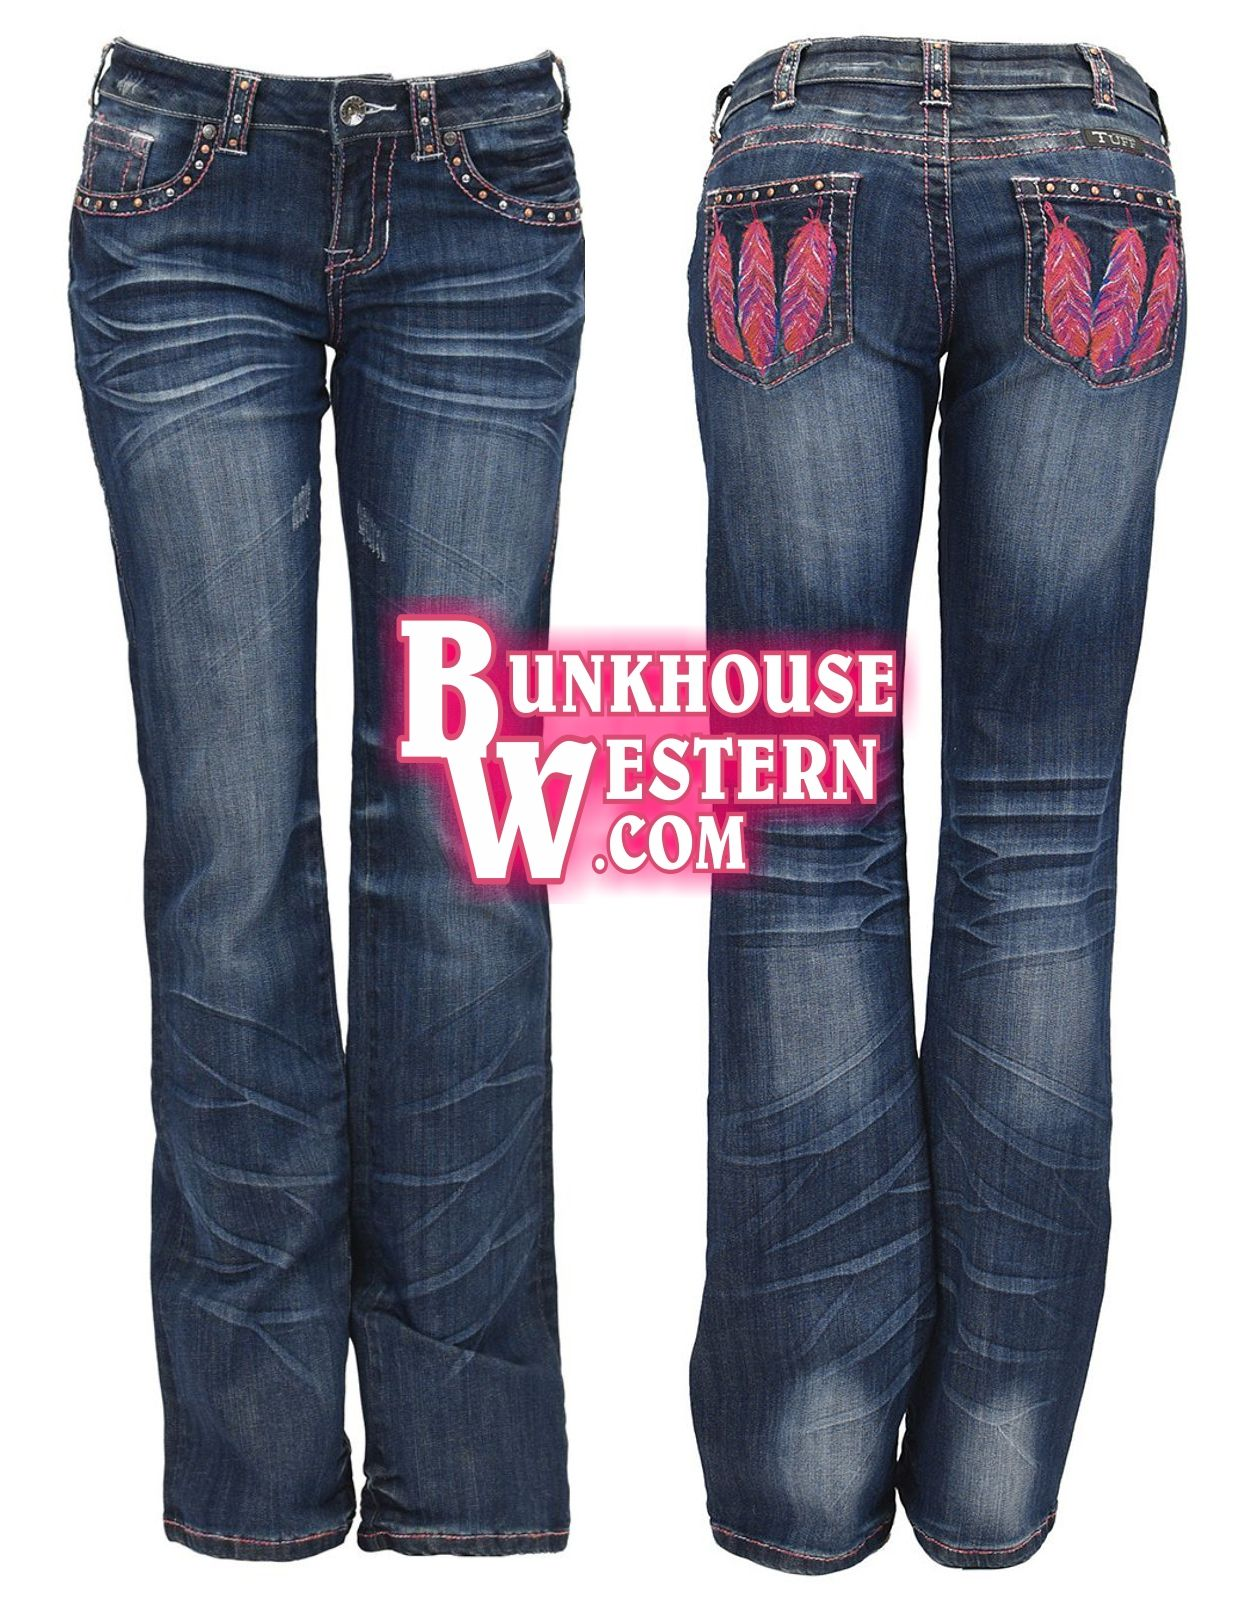 d26071e25cf Cowgirl Tuff Company, Fly Free Pink Jeans, Pink Feather Stitching, & Studs,  $99.99 & FREE United States shipping